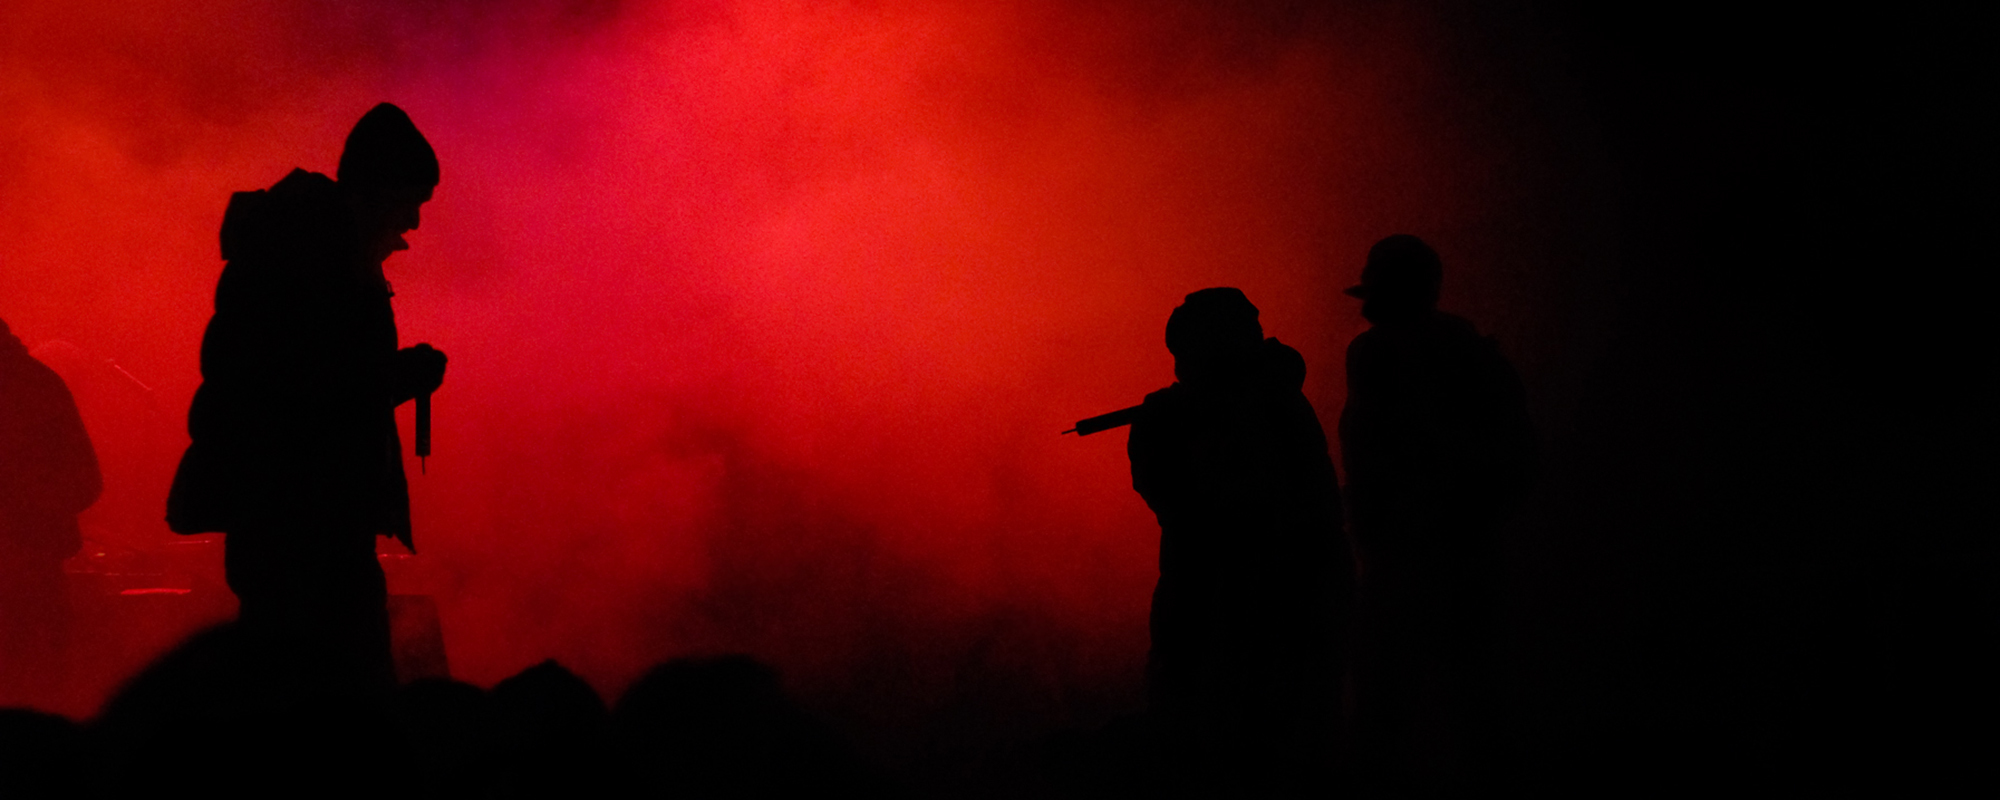 Drill music should be viewed positively, argues Shapiro. Picture: Getty